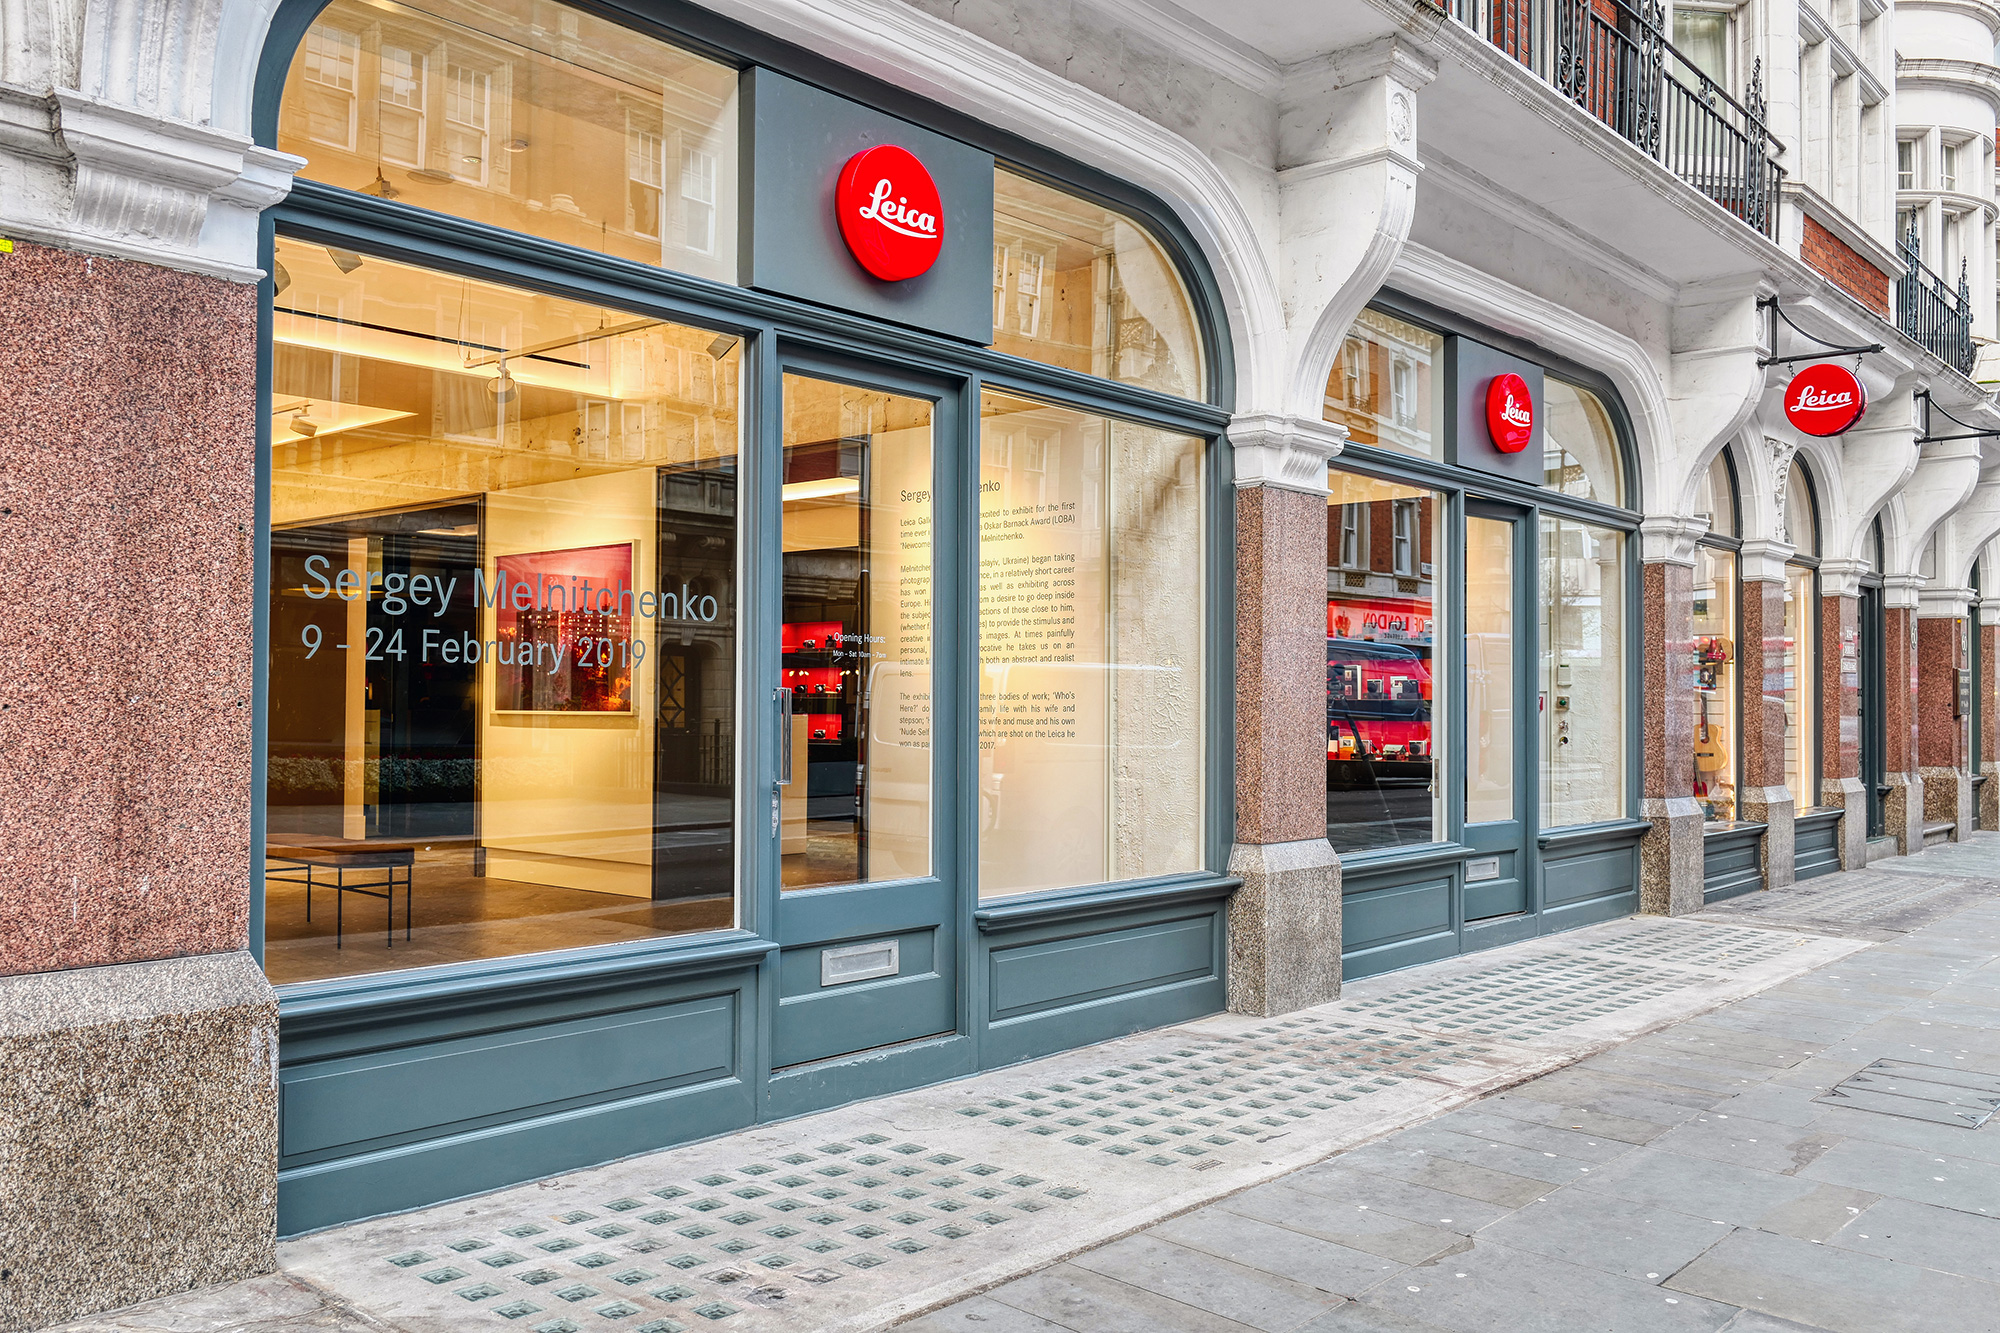 The new Leica store Mayfair